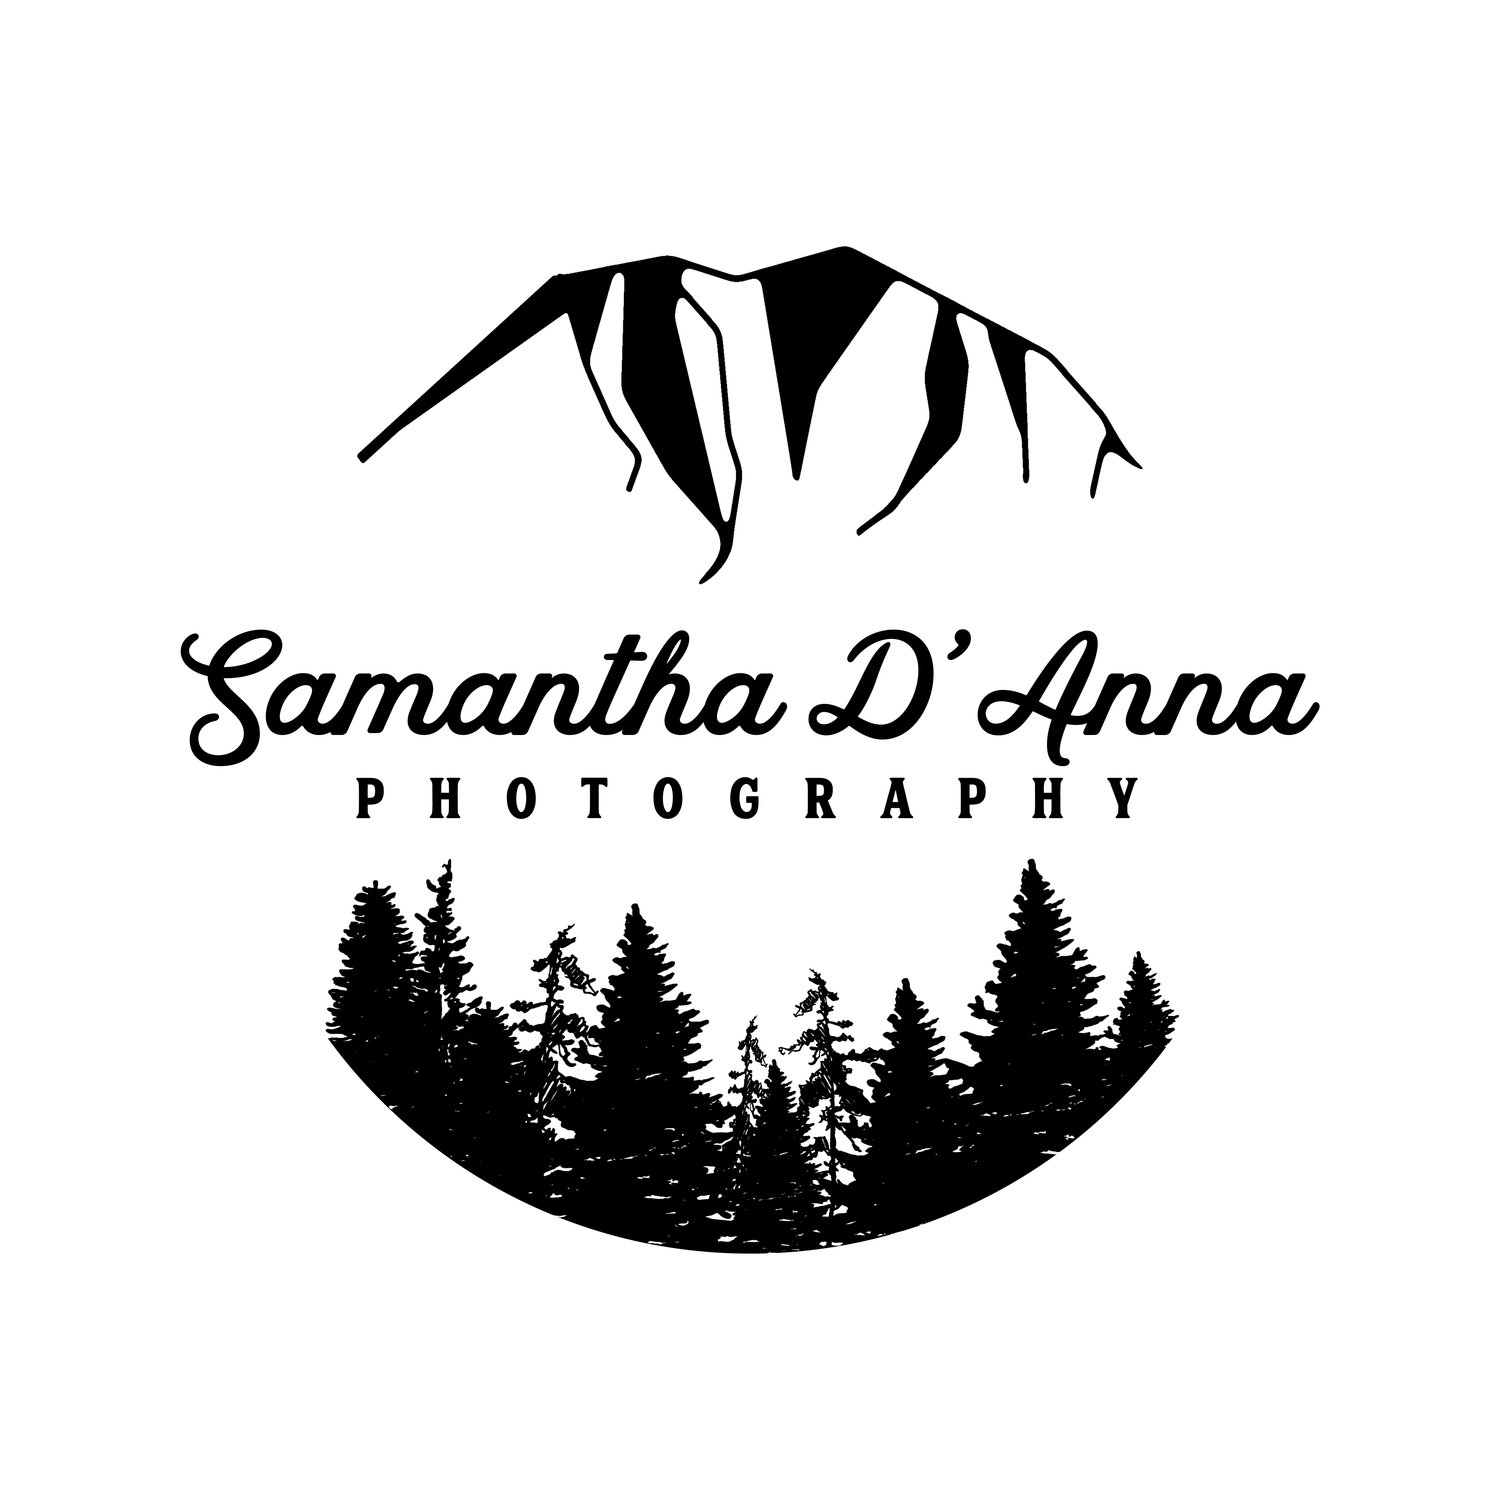 Samantha D'Anna Photography